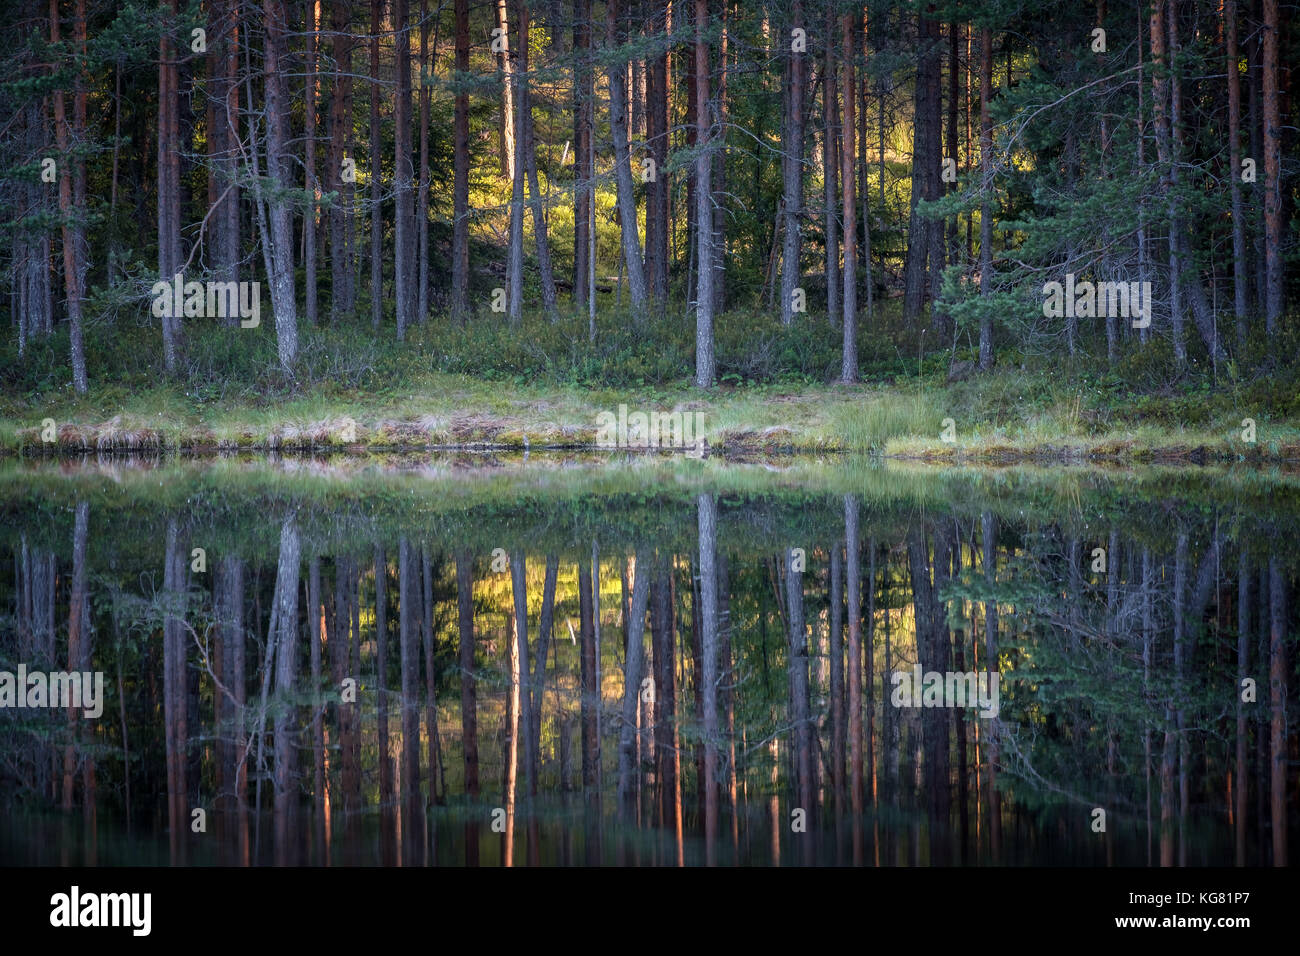 Beautiful reflection with trees and forest at little lake in Finland - Stock Image